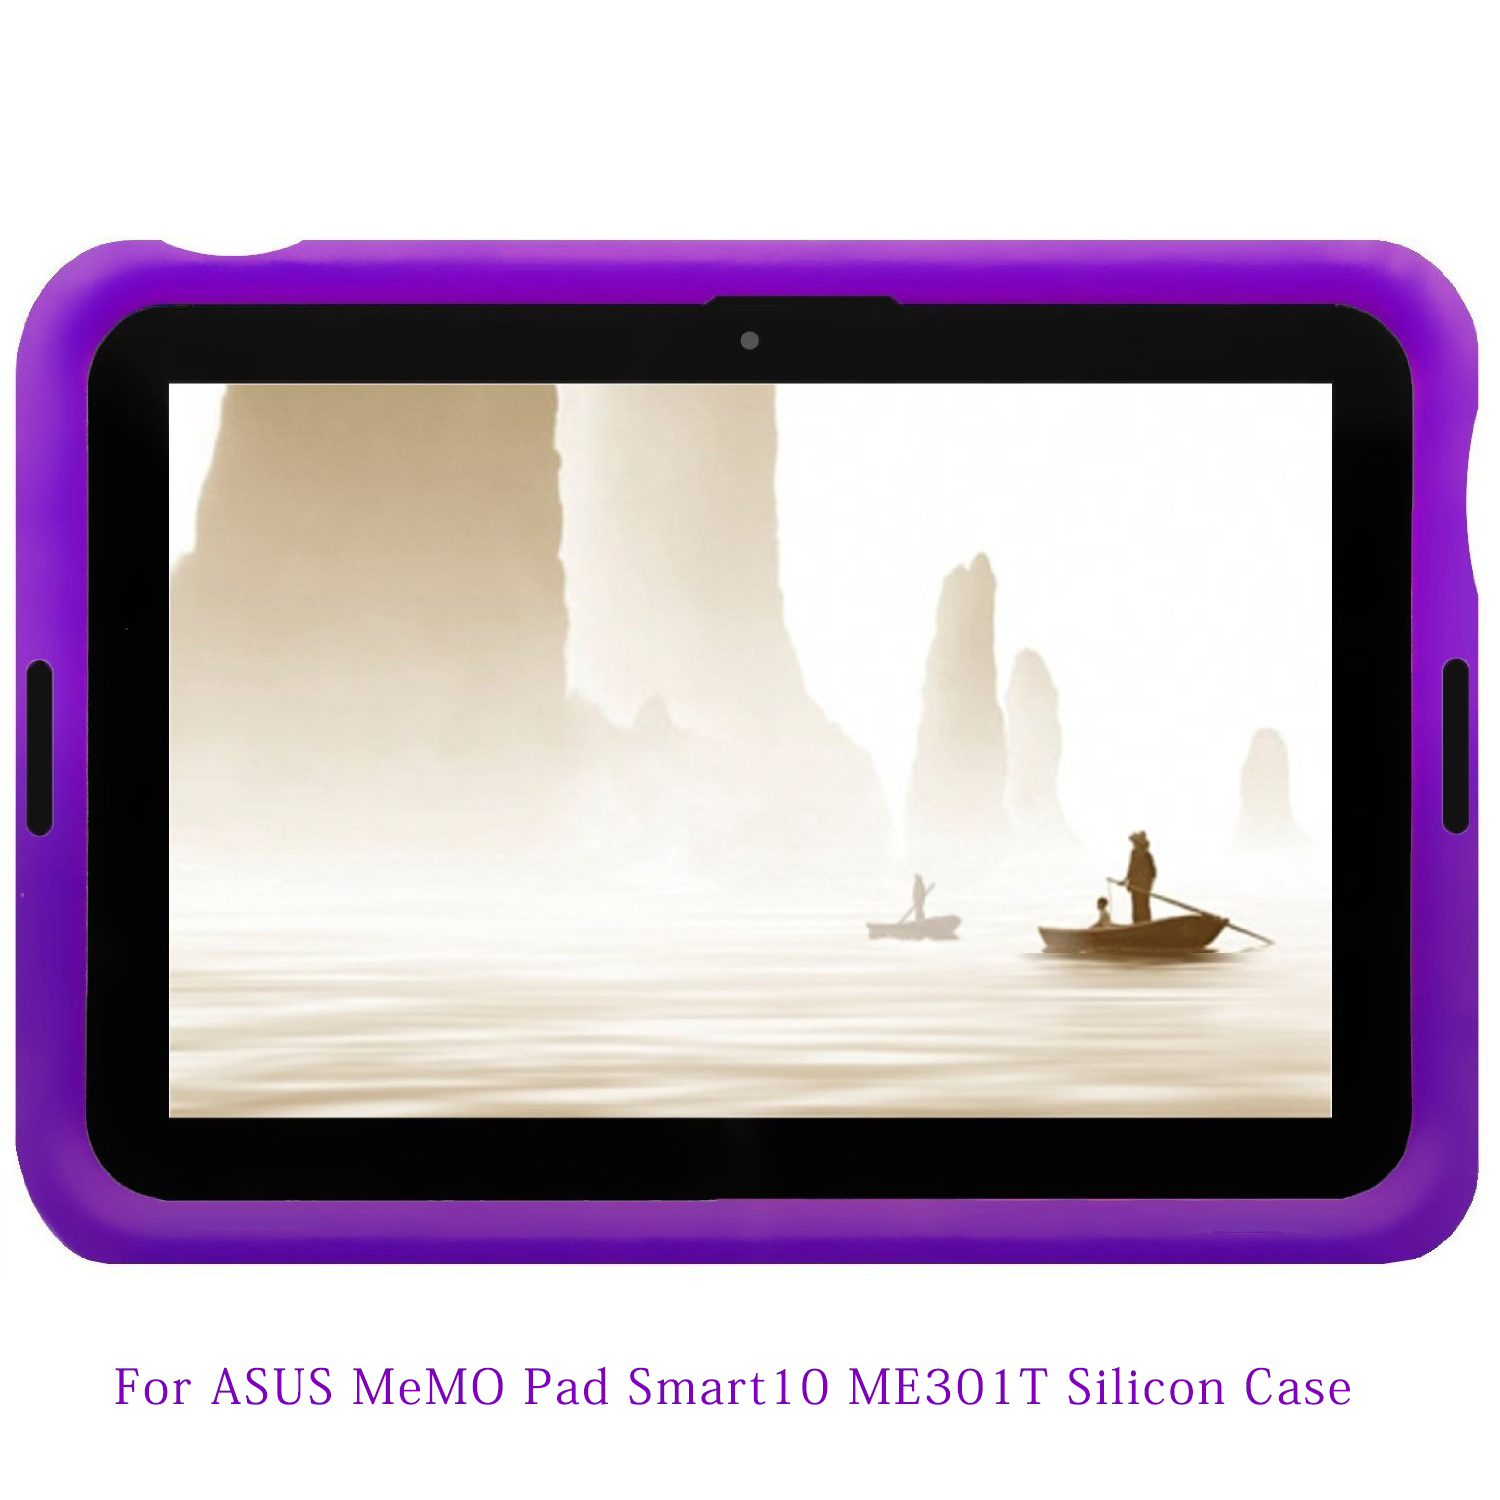 MingShore For ASUS MeMO Pad Smart10 ME301T Silicone Cover Case 10.1inch Rugged Tablet Cover Case For ASUS  ME301T 10.1 Flat Case